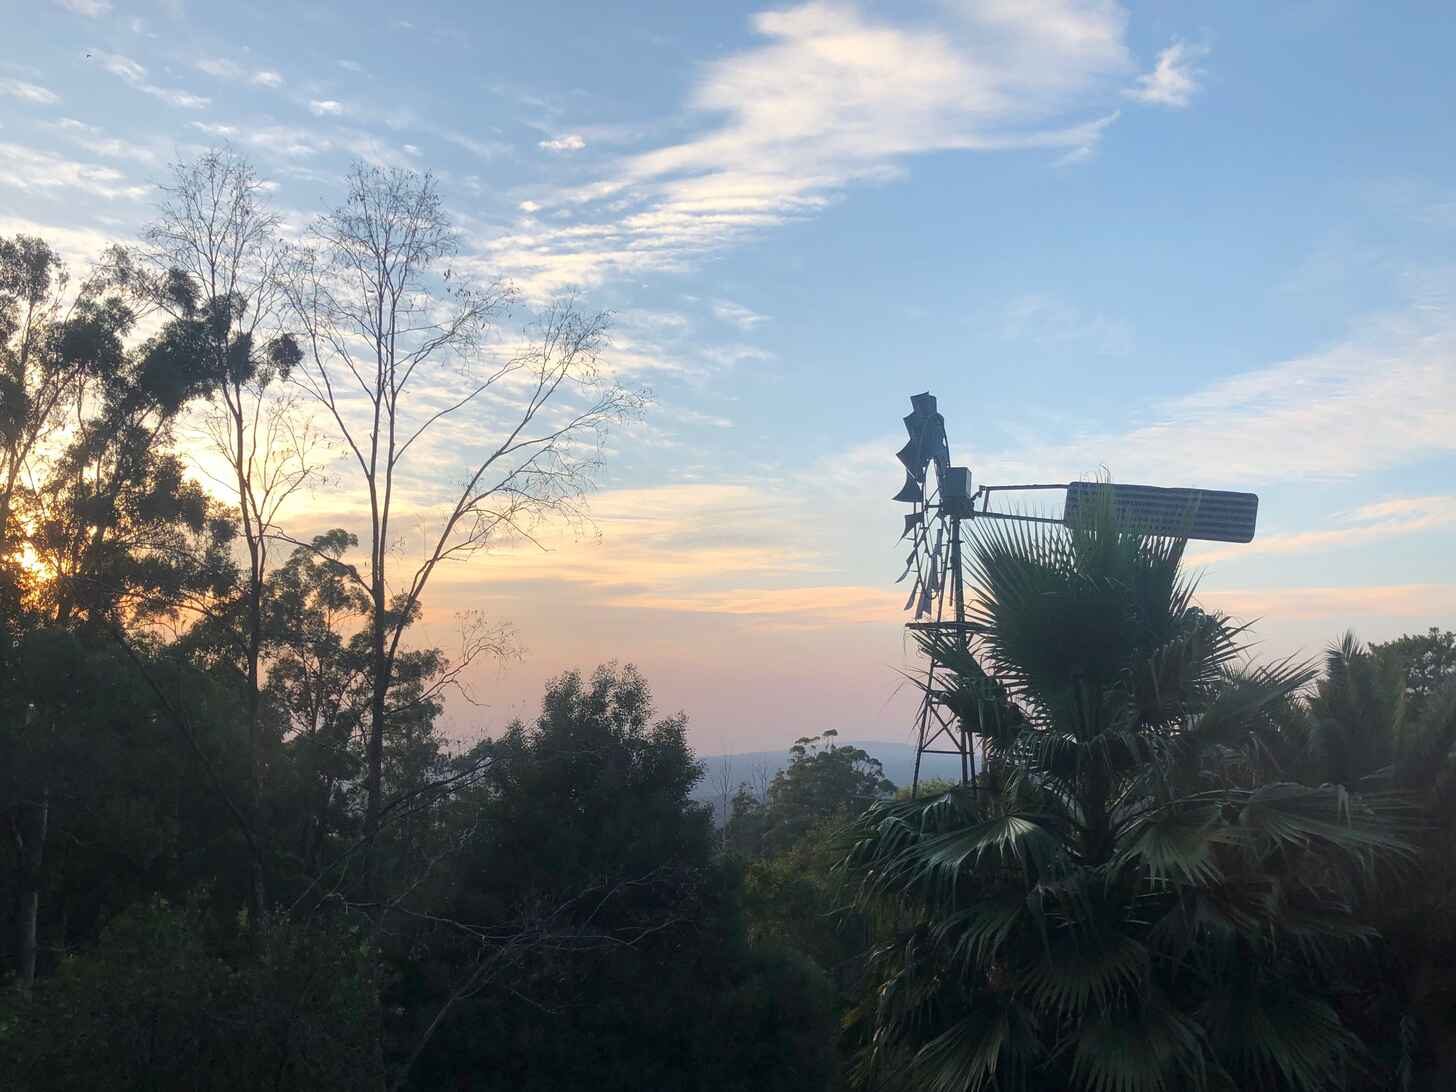 Photo of a sunrise with trees and windmill visible